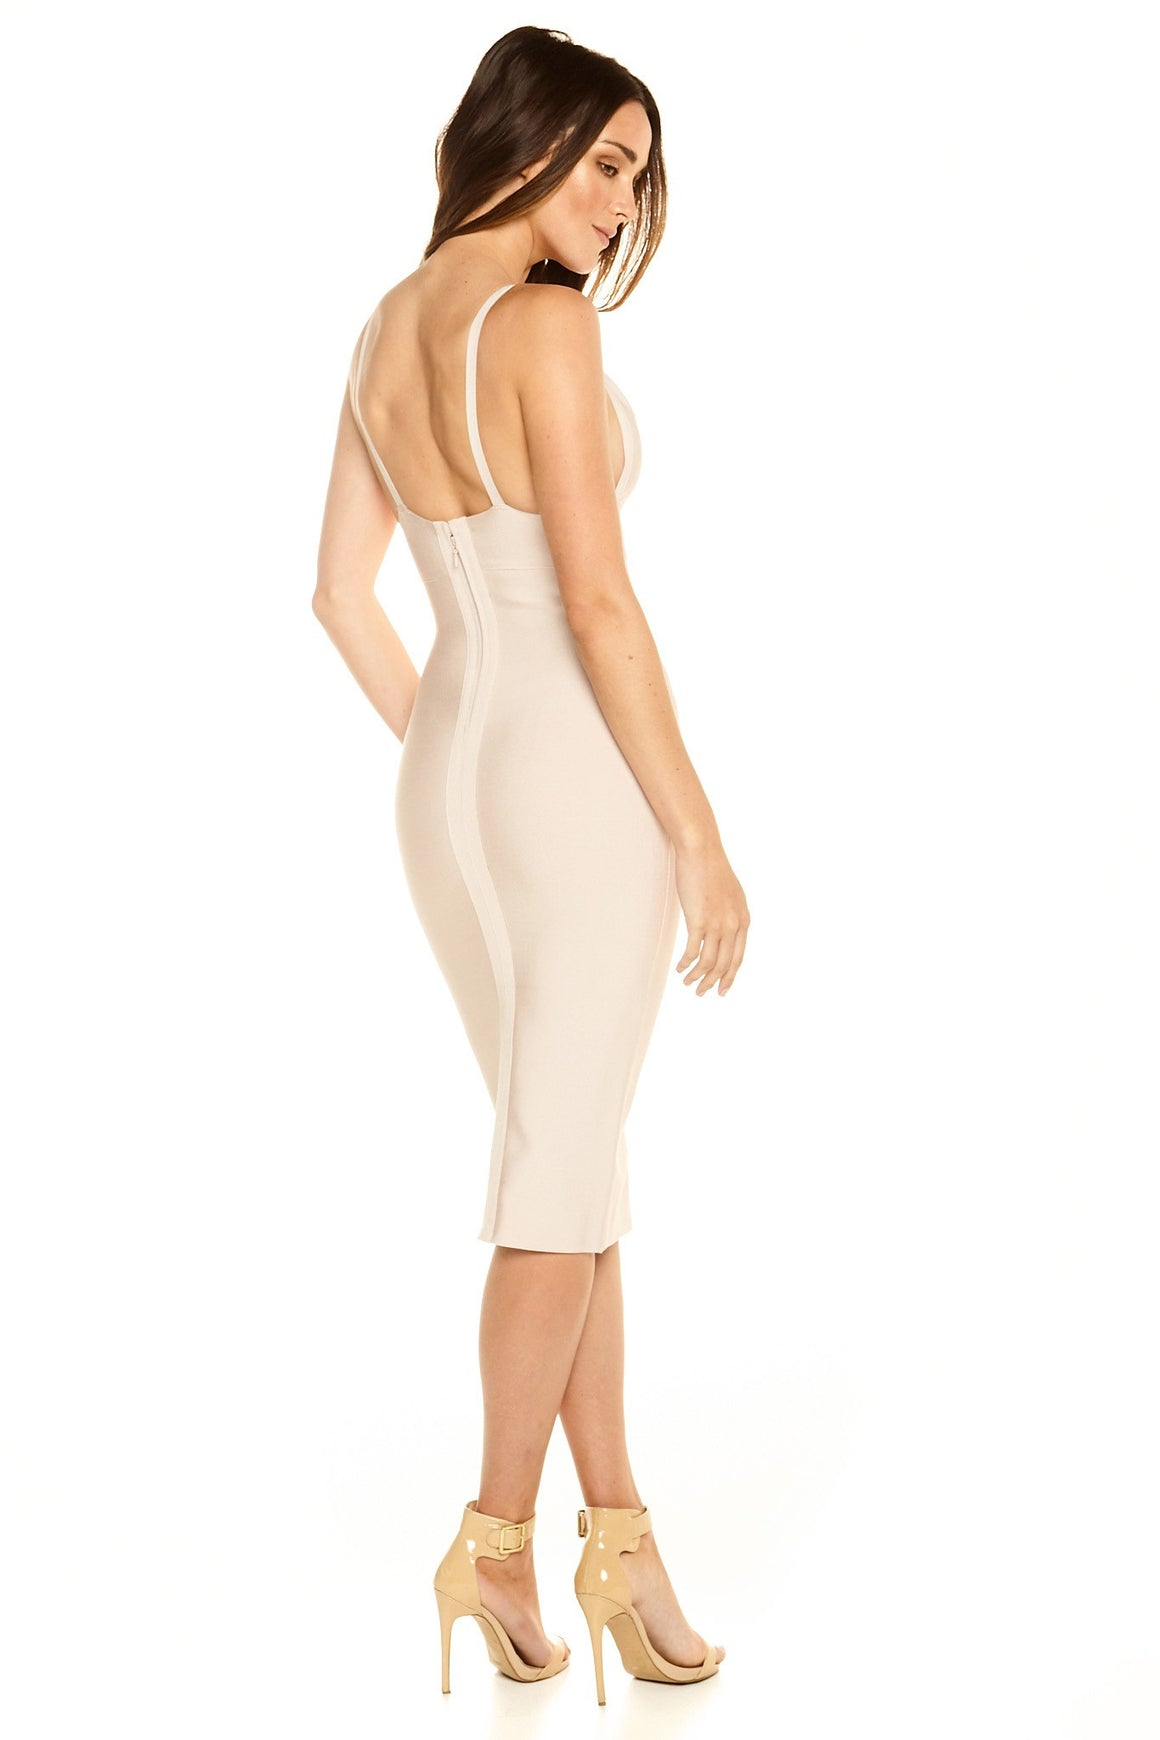 Portia V-Neck Midi Bandage Dress - Nude